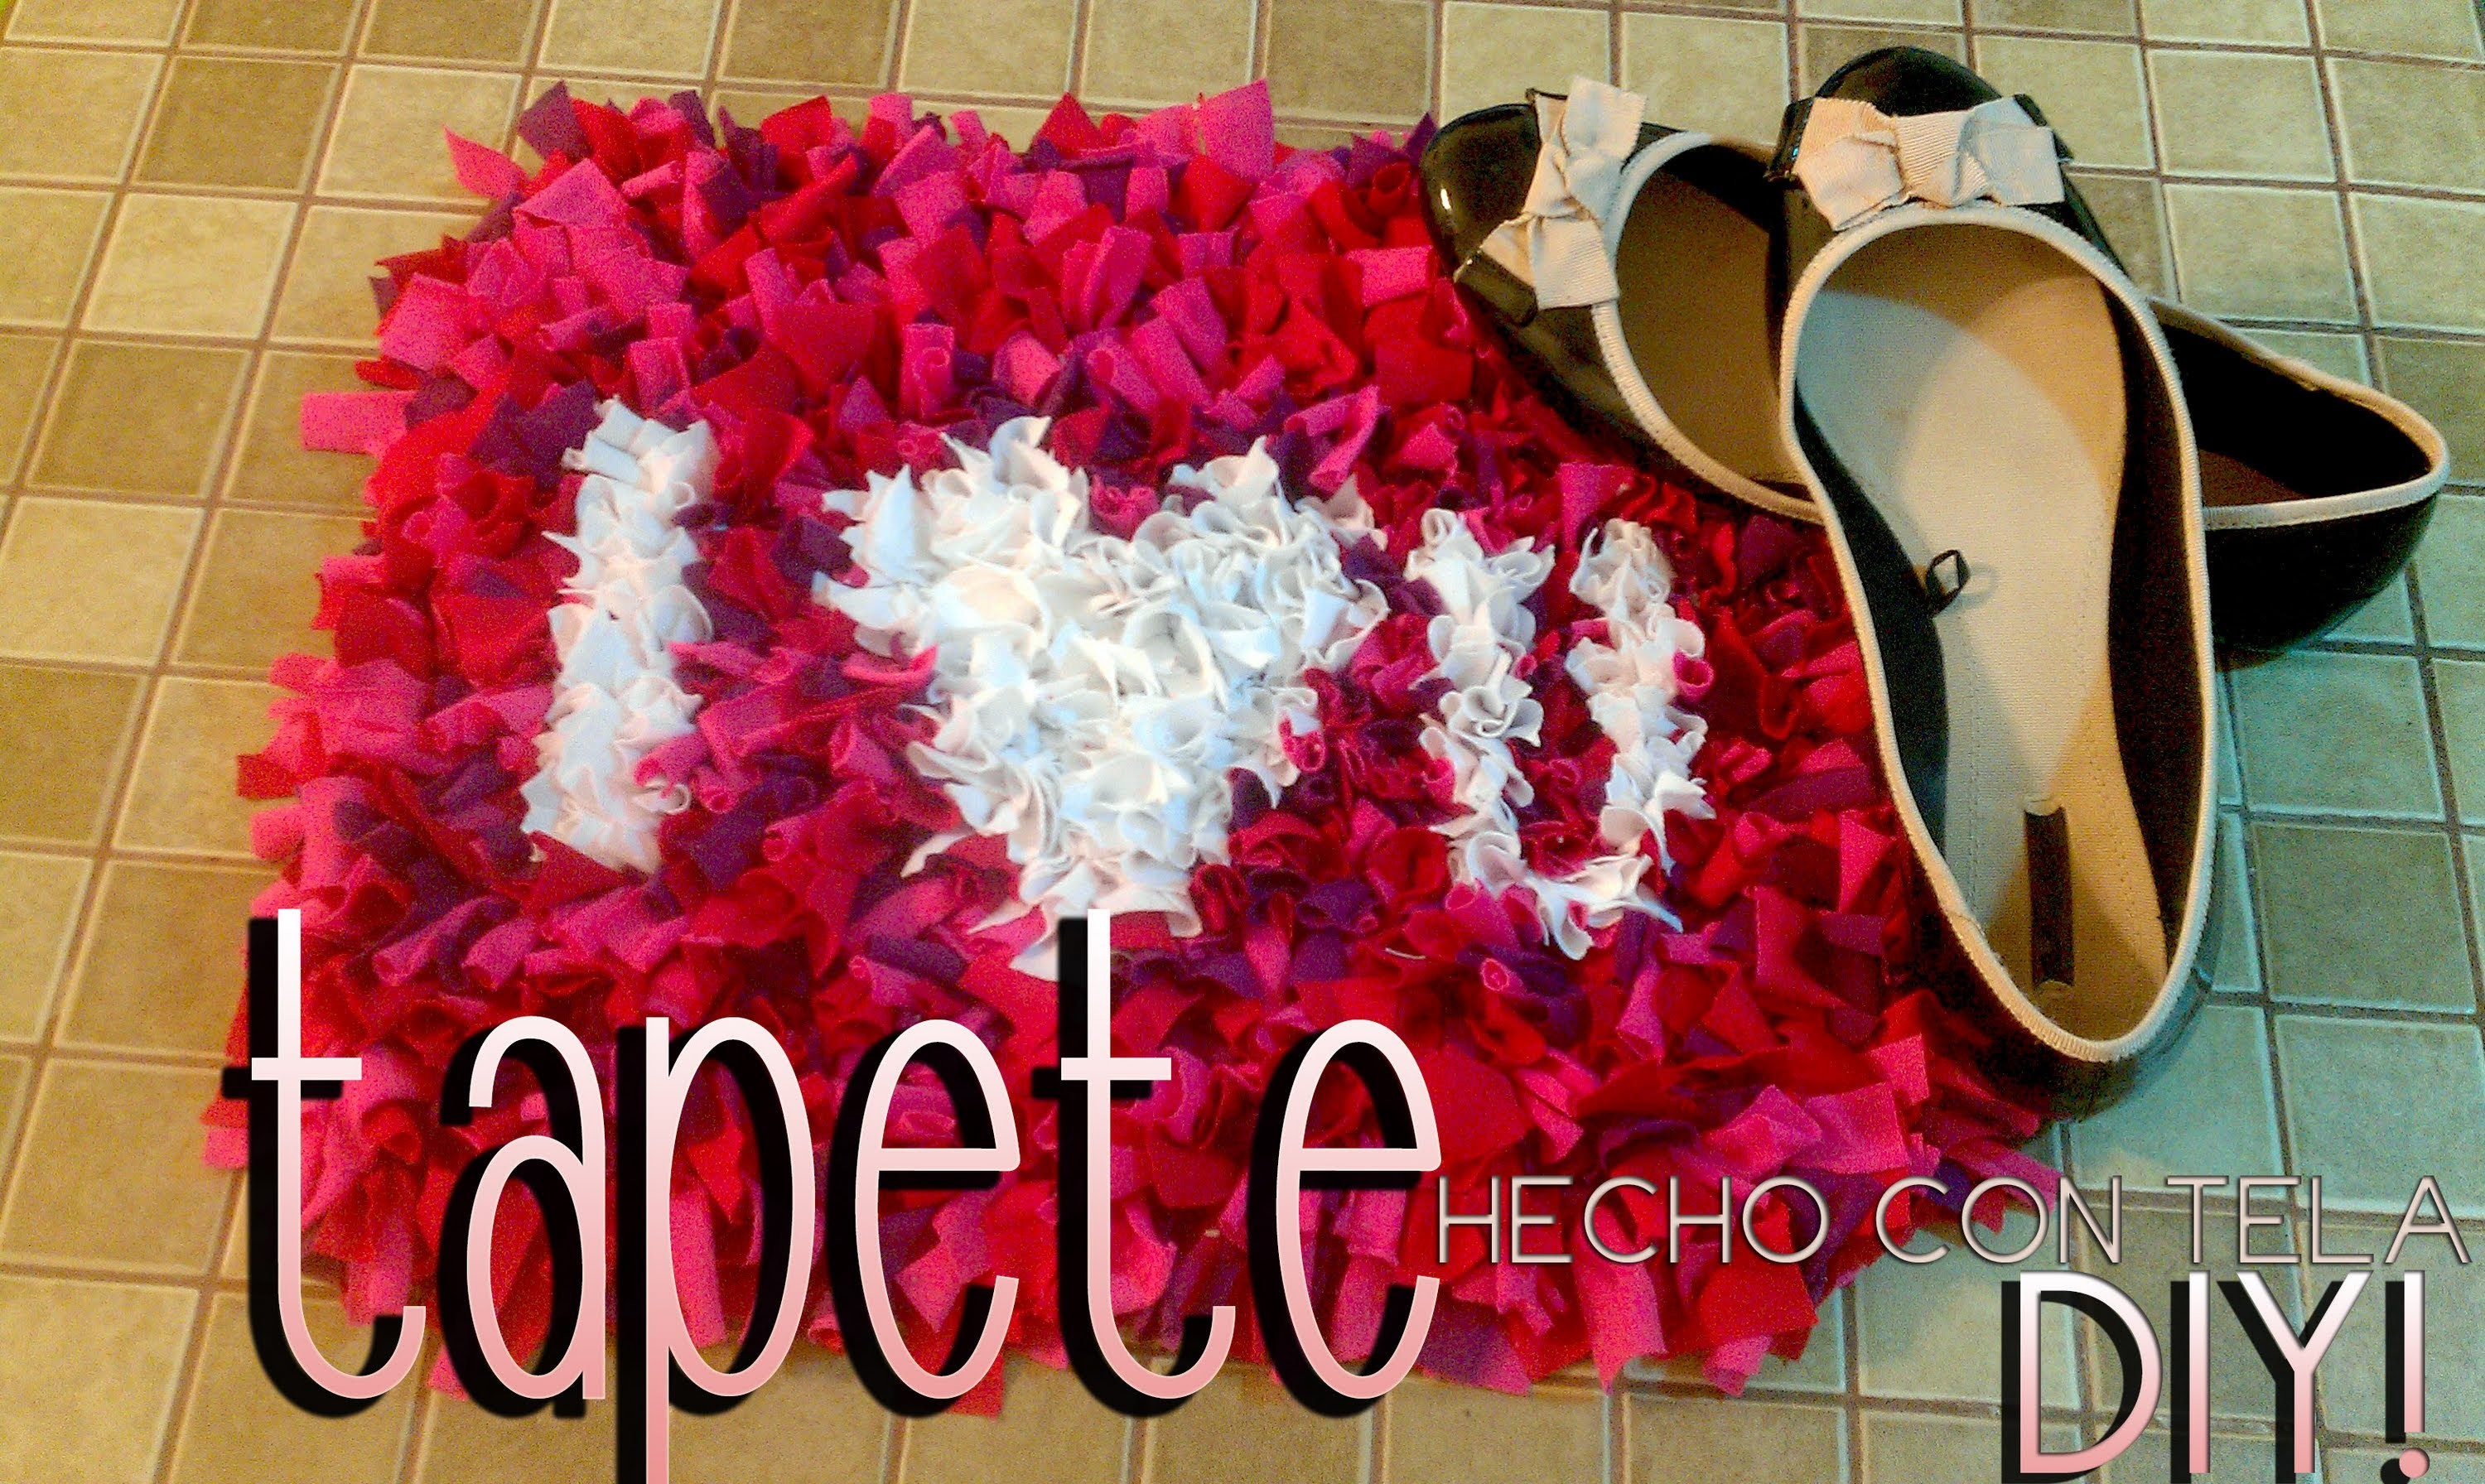 DIY: tapete hecho con tela 14 de febrero♥.rug made with fabric